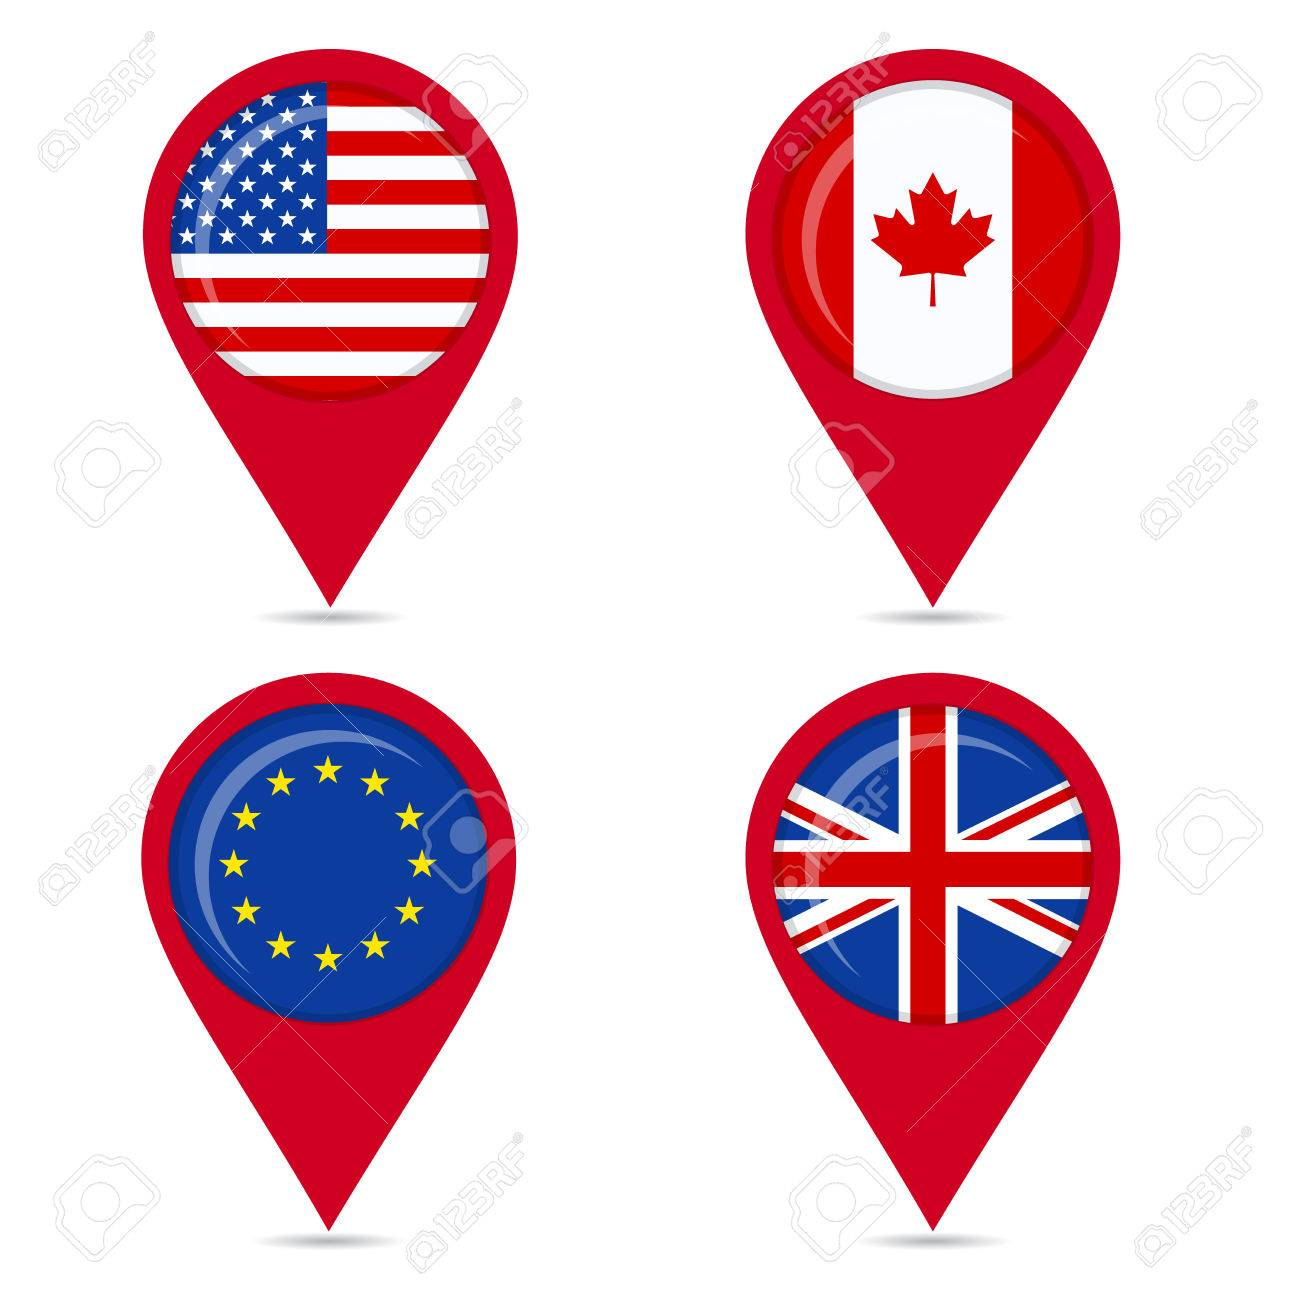 Map Pin Icons Of National Flags United States Canada Eu Euan Union